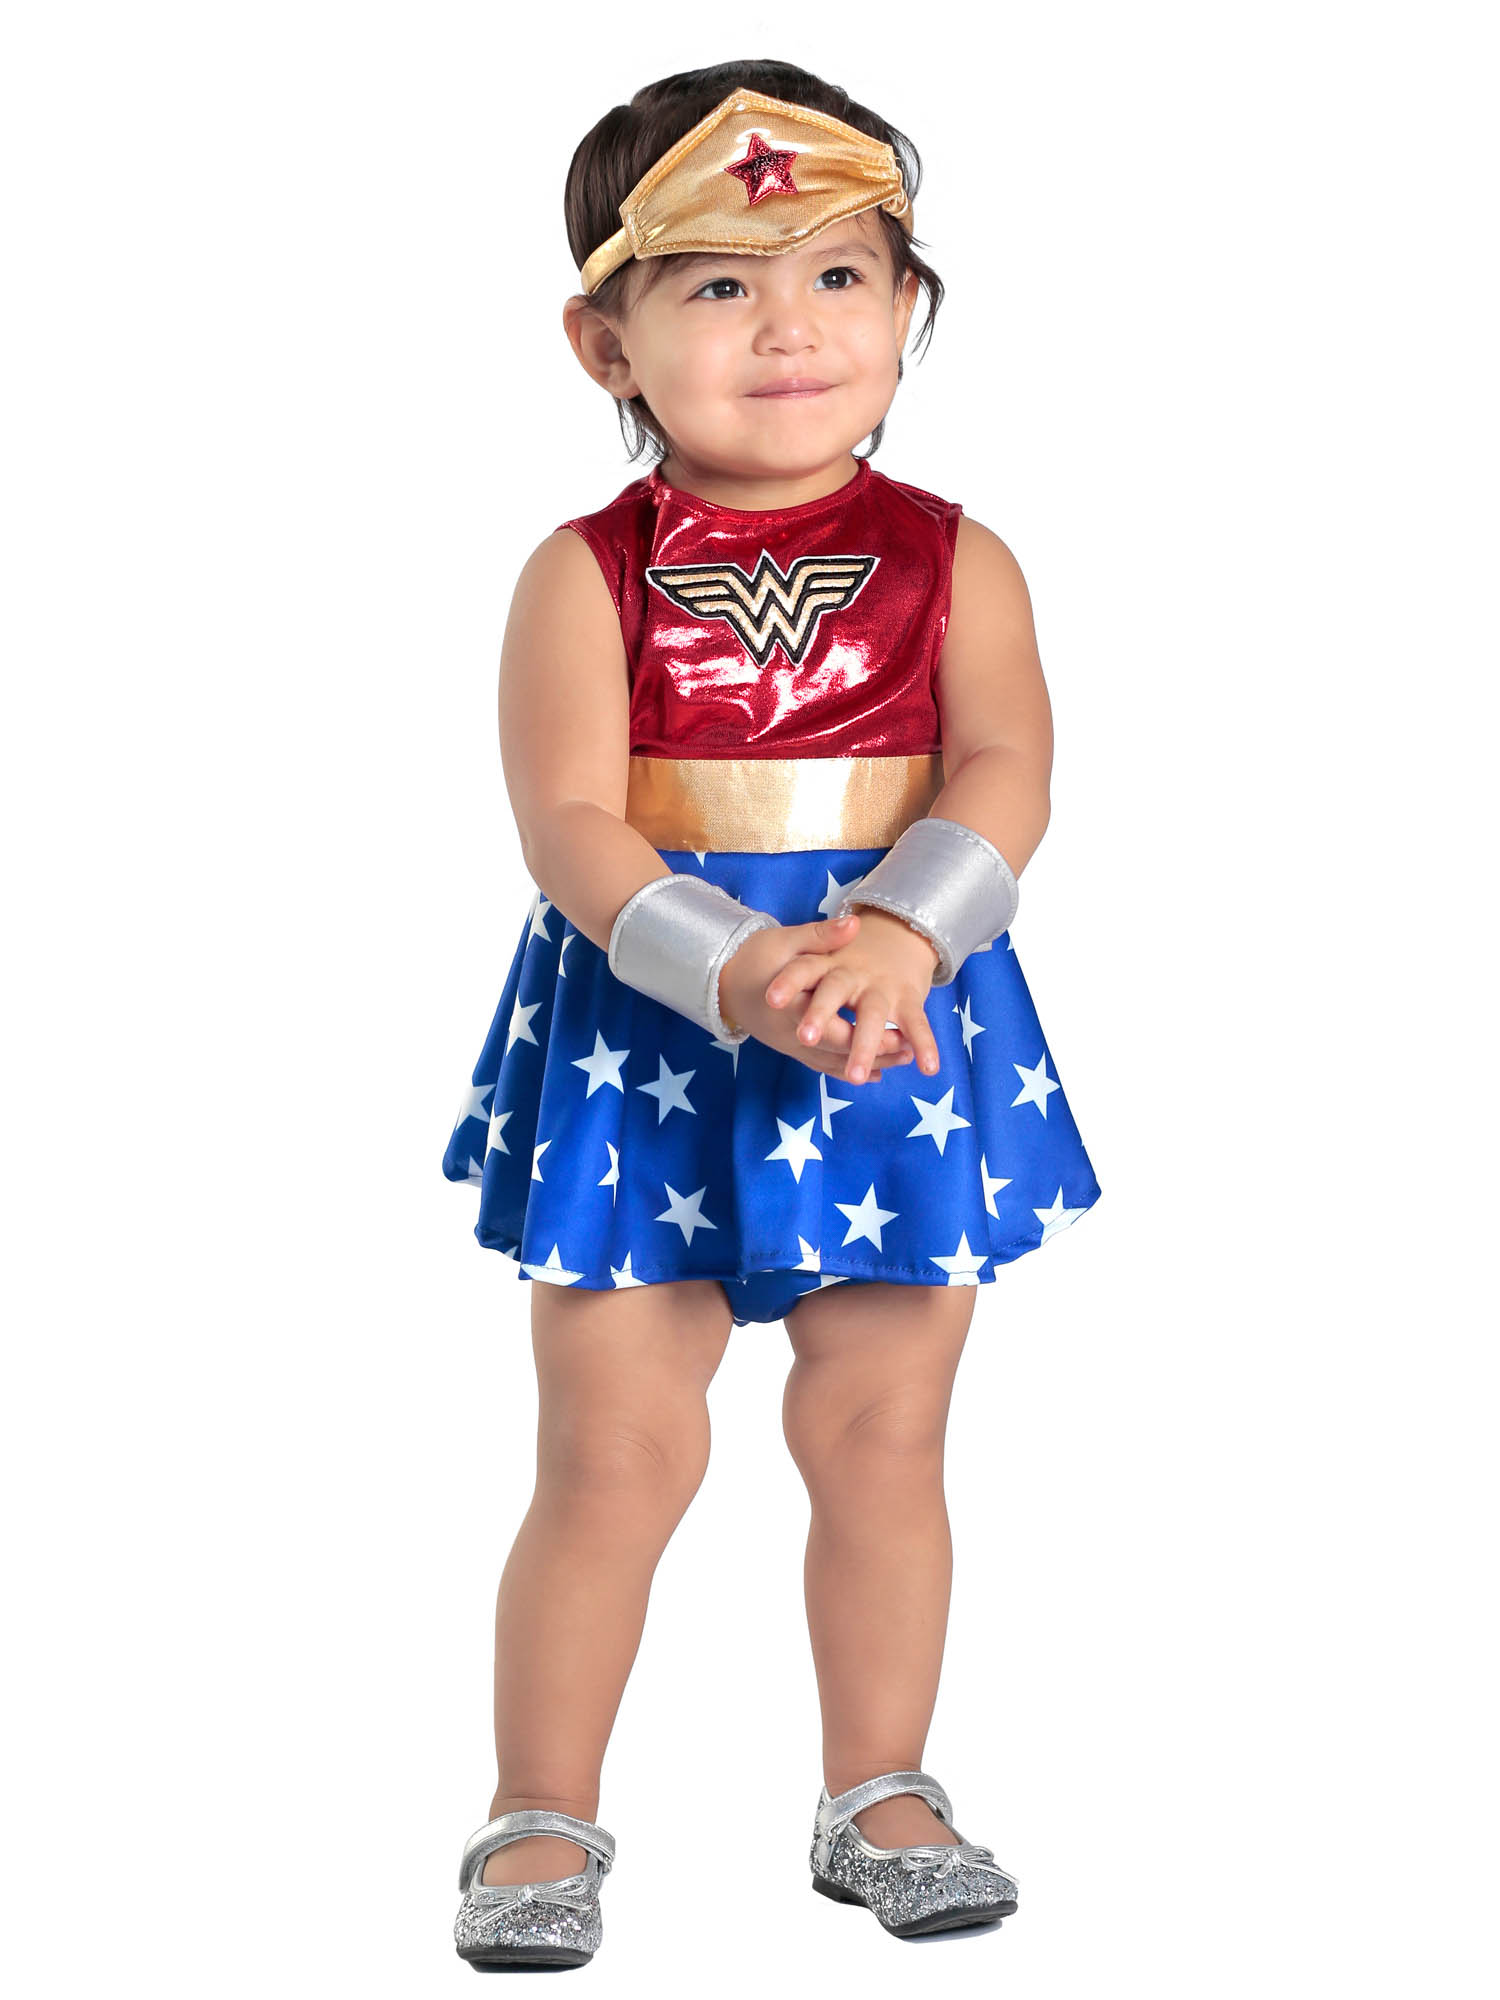 Baby girl dresses 0 6 months | Baby & Toddler Dresses | Compare ...